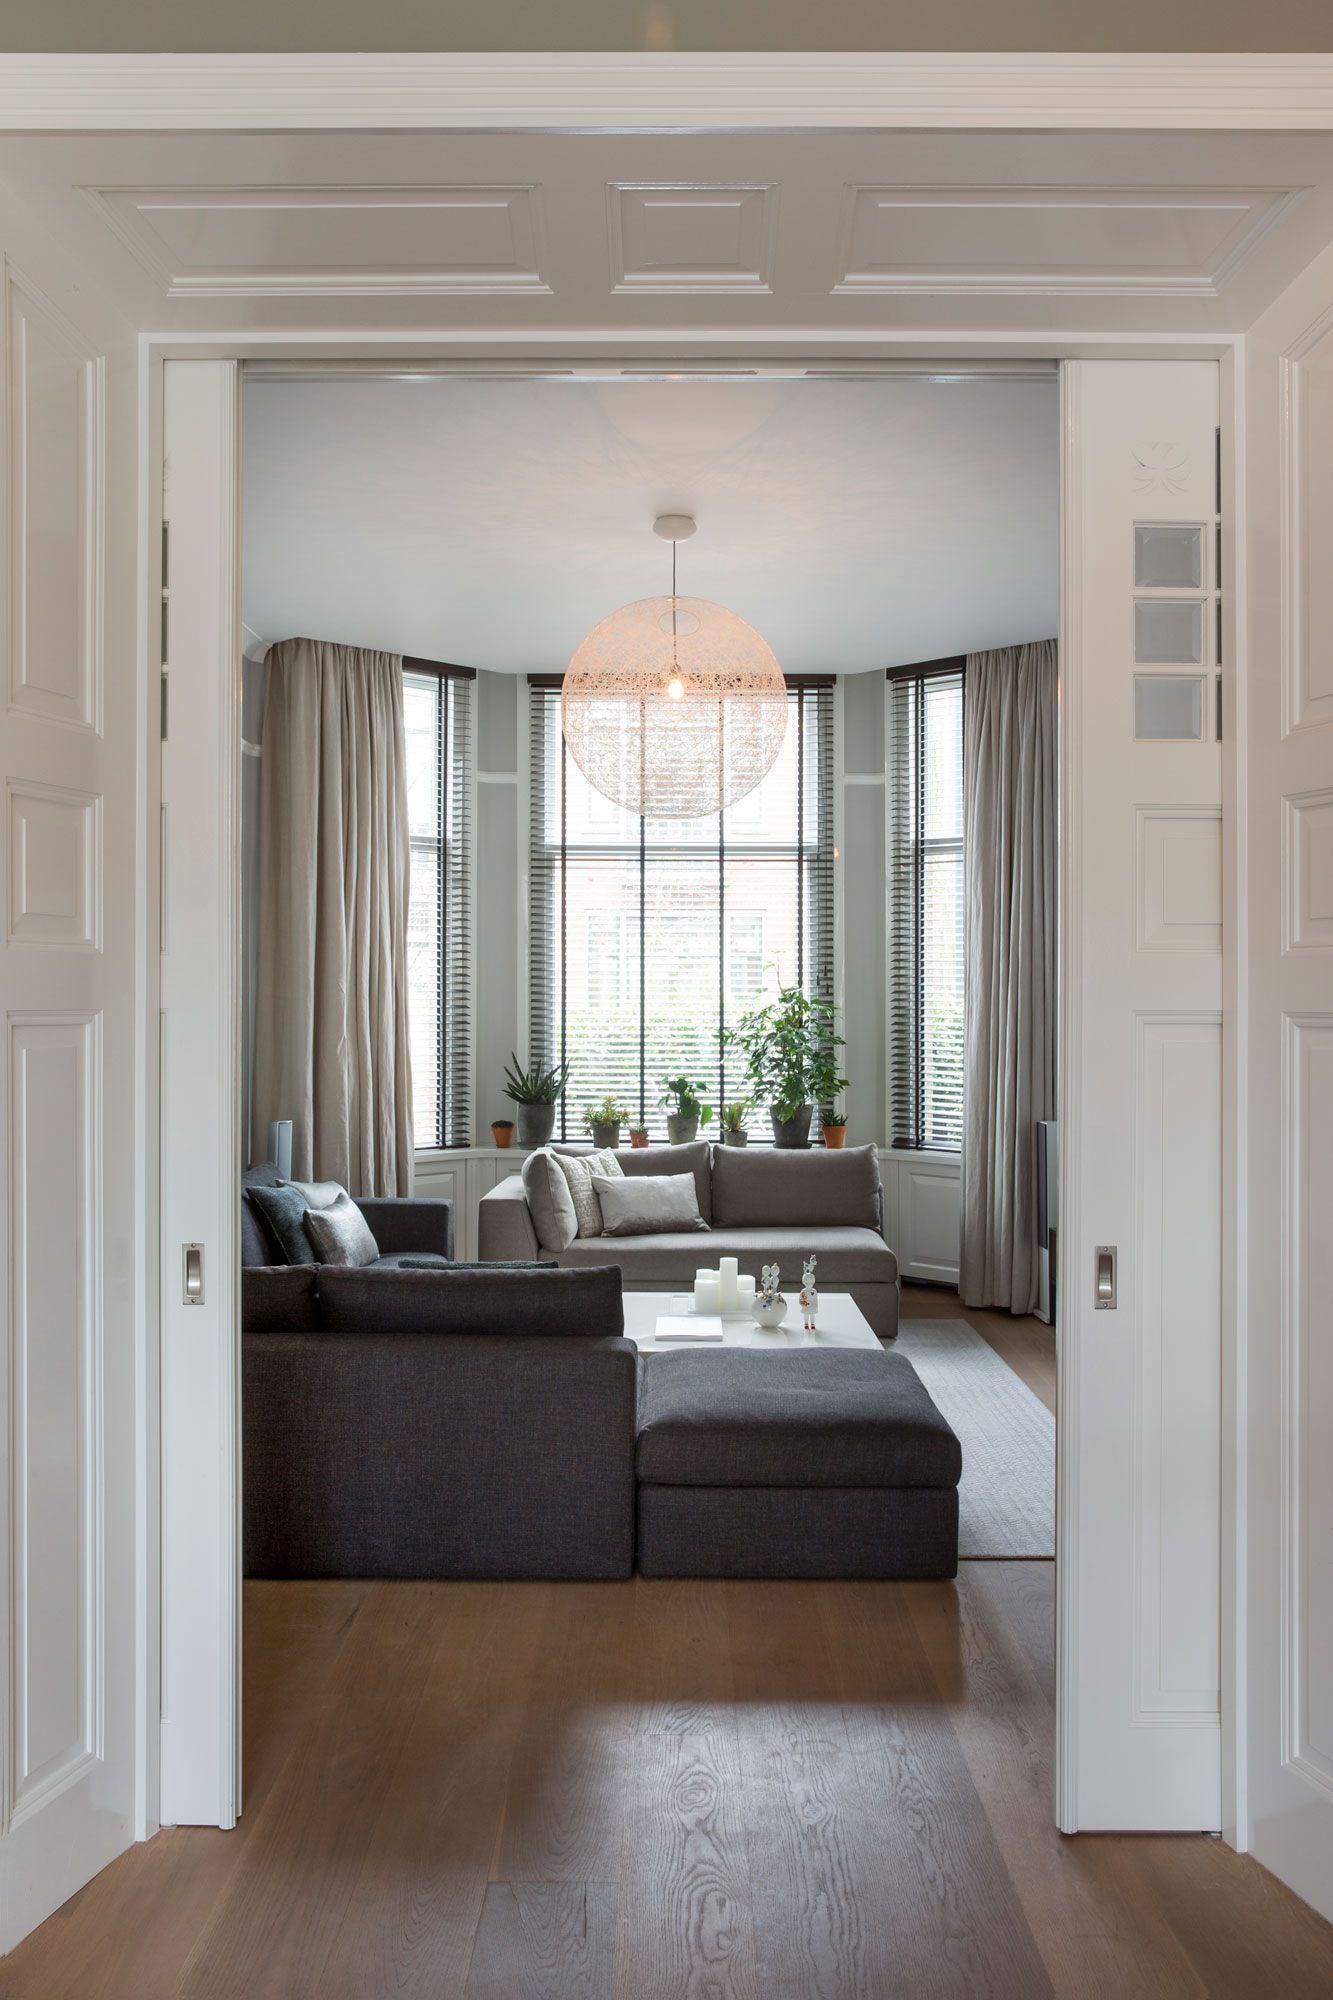 Haarlem Interieur Interior By Choc Studio Modern Chique Mansion Haarlem